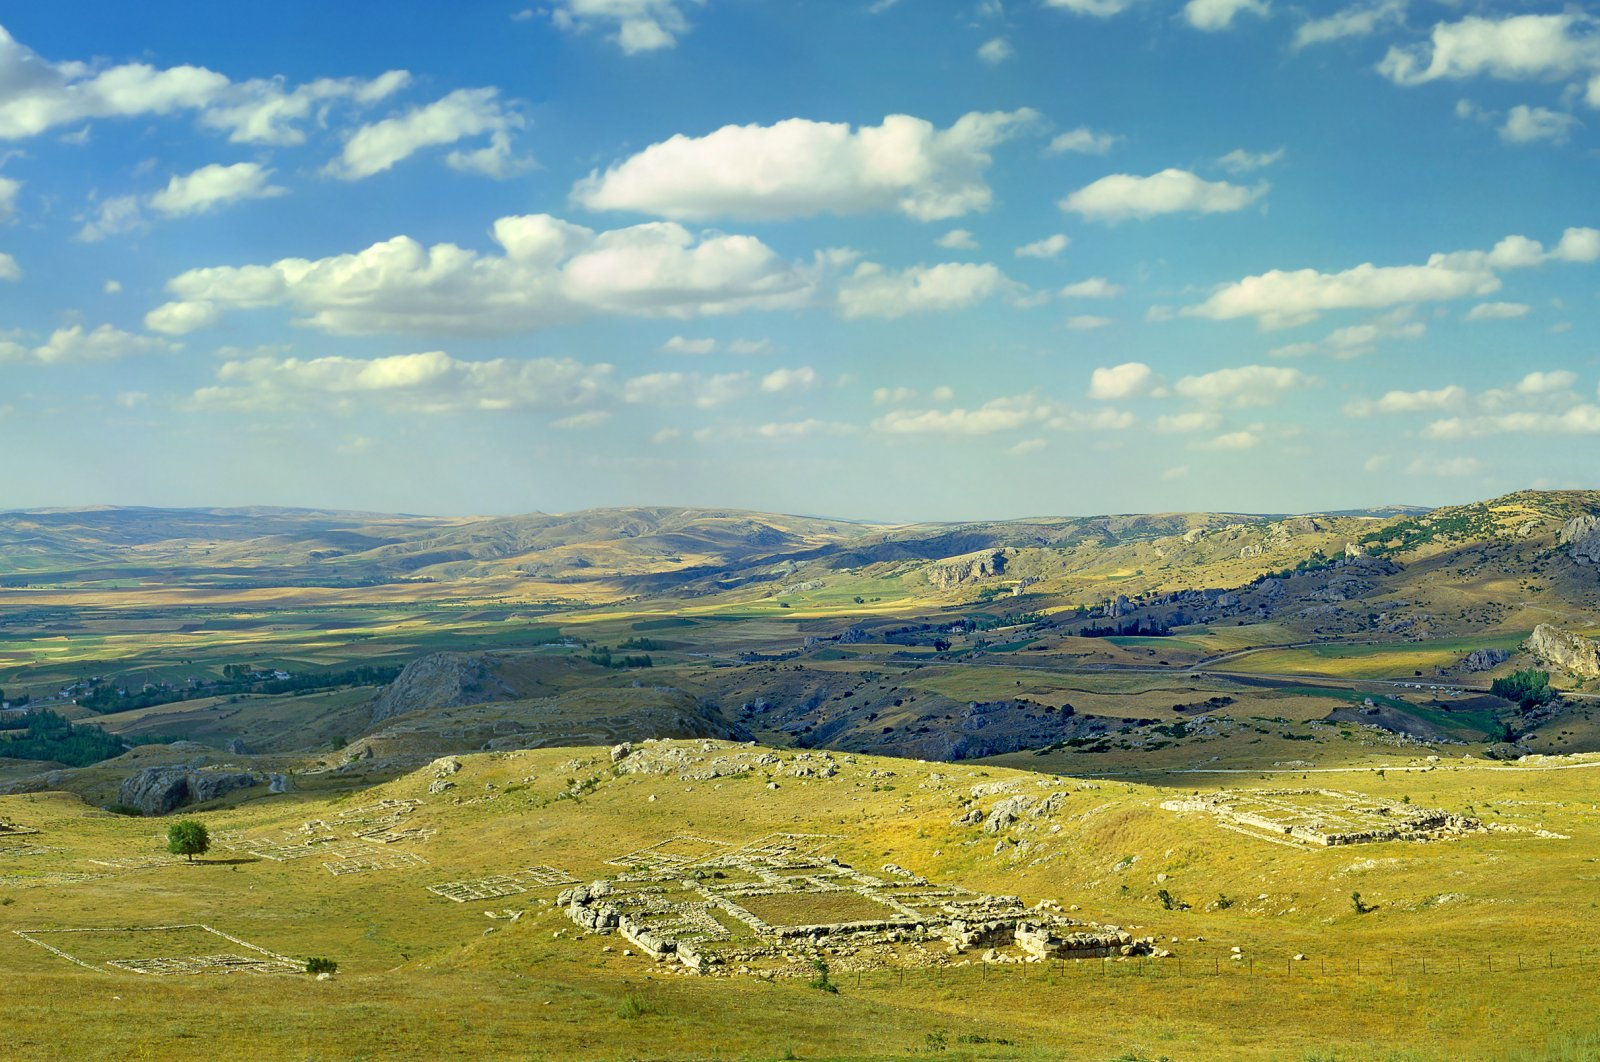 Destroyed by fire, the fall of Hattusa marked the end of the Hittite empire. (Shutterstock Photo)